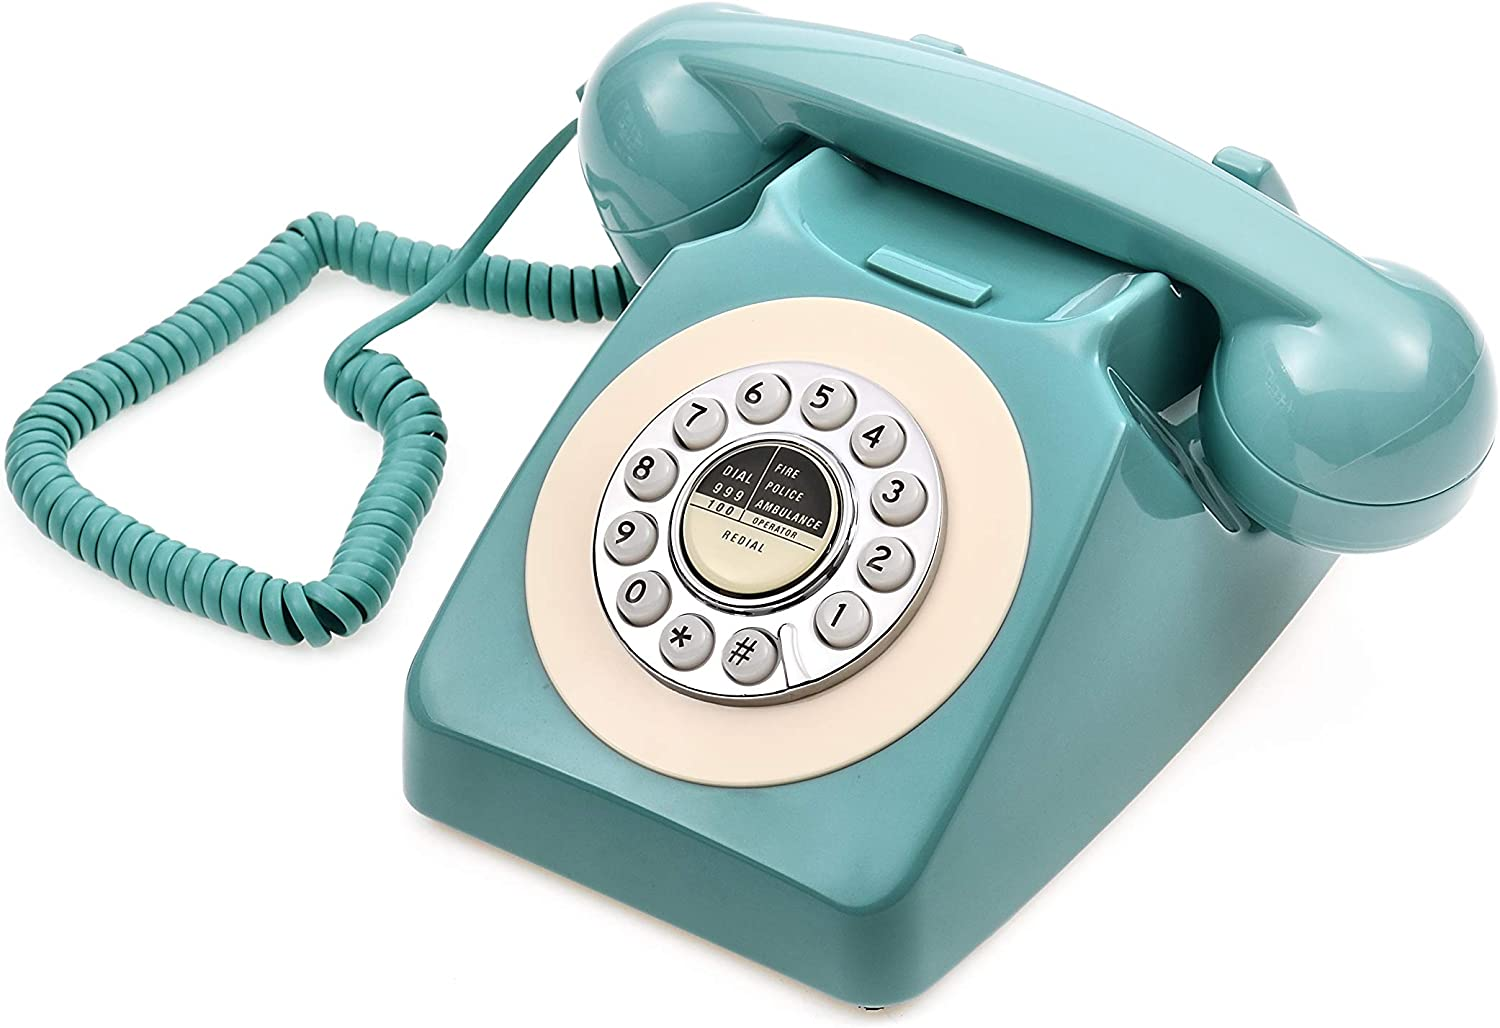 Retro Telephone, CALLANY 80's Classic Telephone/Landline Phone/Wired Telephone for Home/Hotel, Fresh Blue